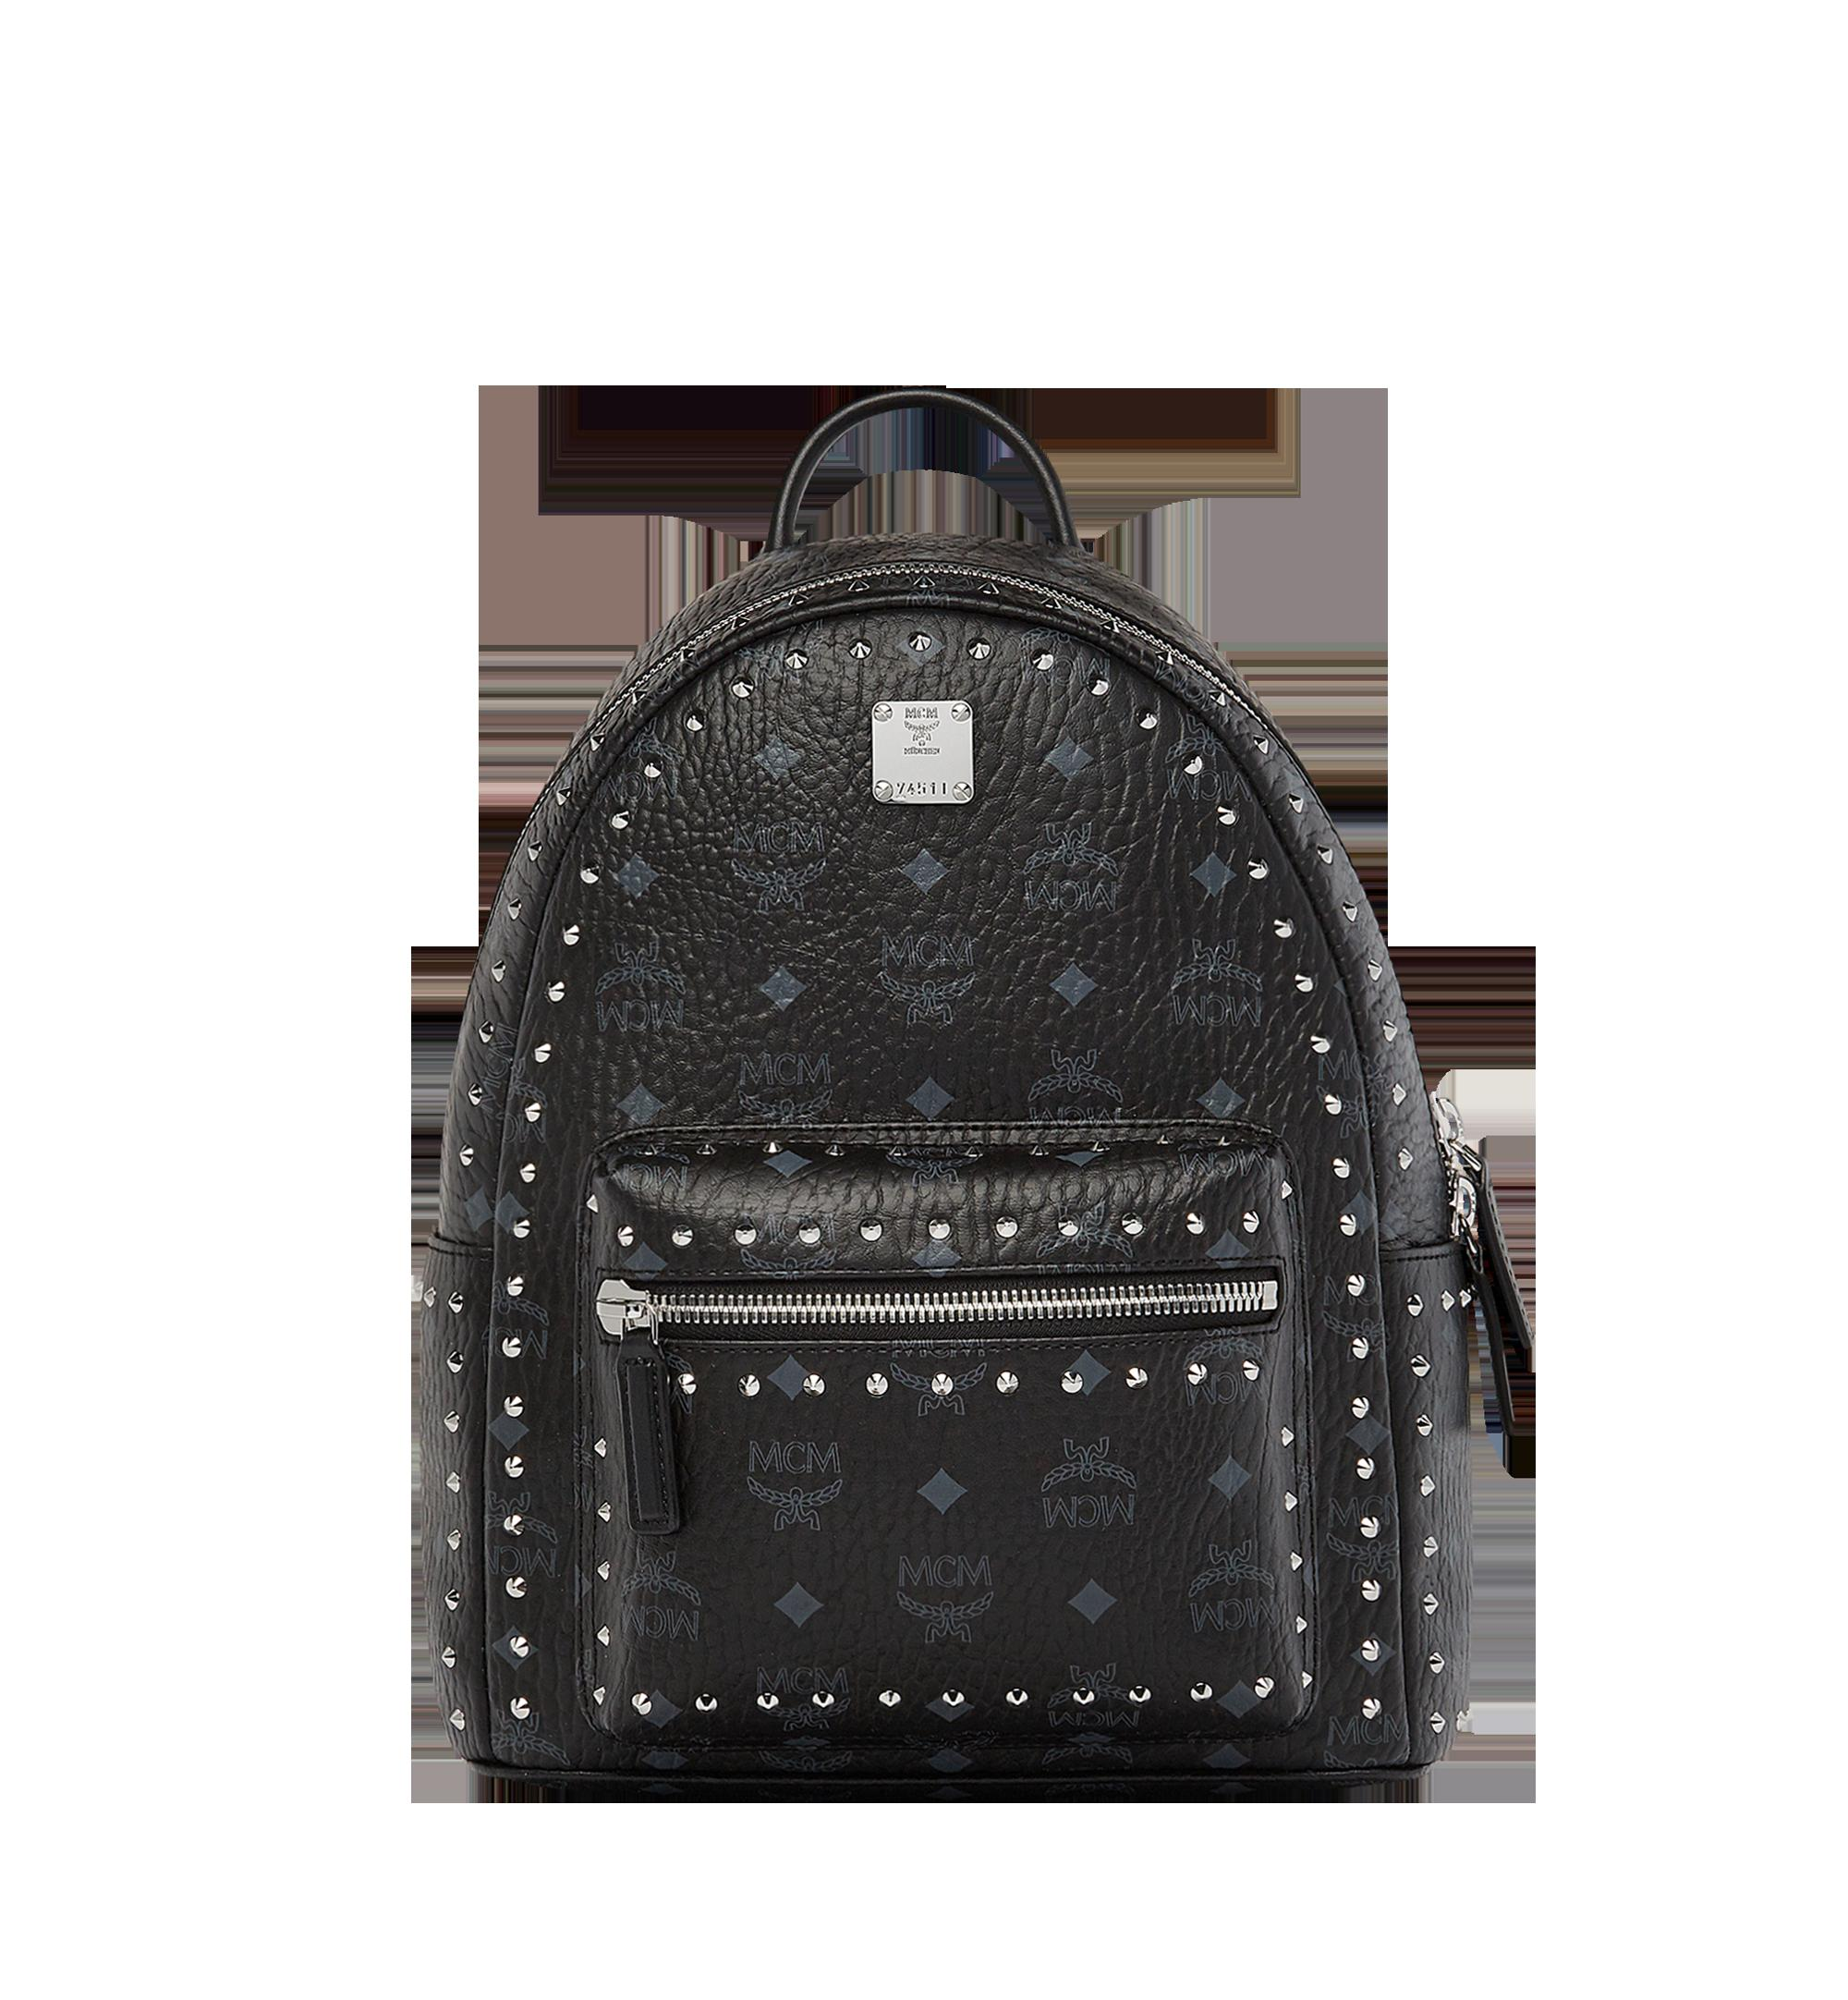 e415056454 Mcm Small Black Studded Outline Visetos Stark Backpack